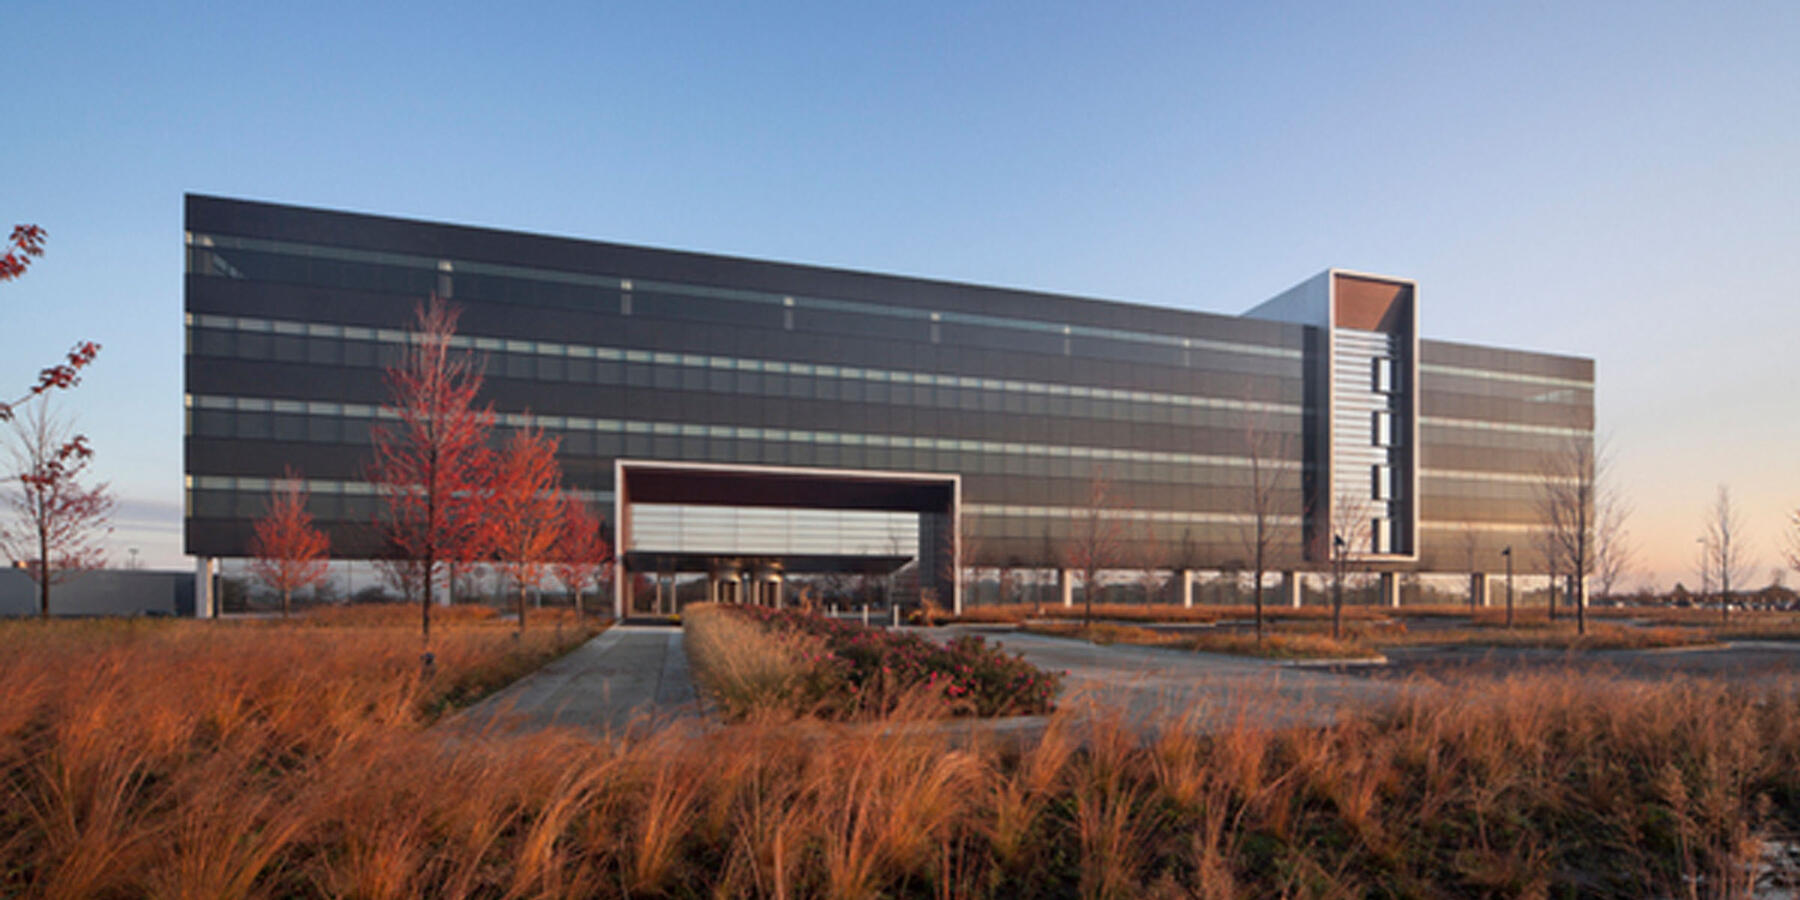 Corporate Office Construction - Panduit World Headquarters exterior full view at dusk